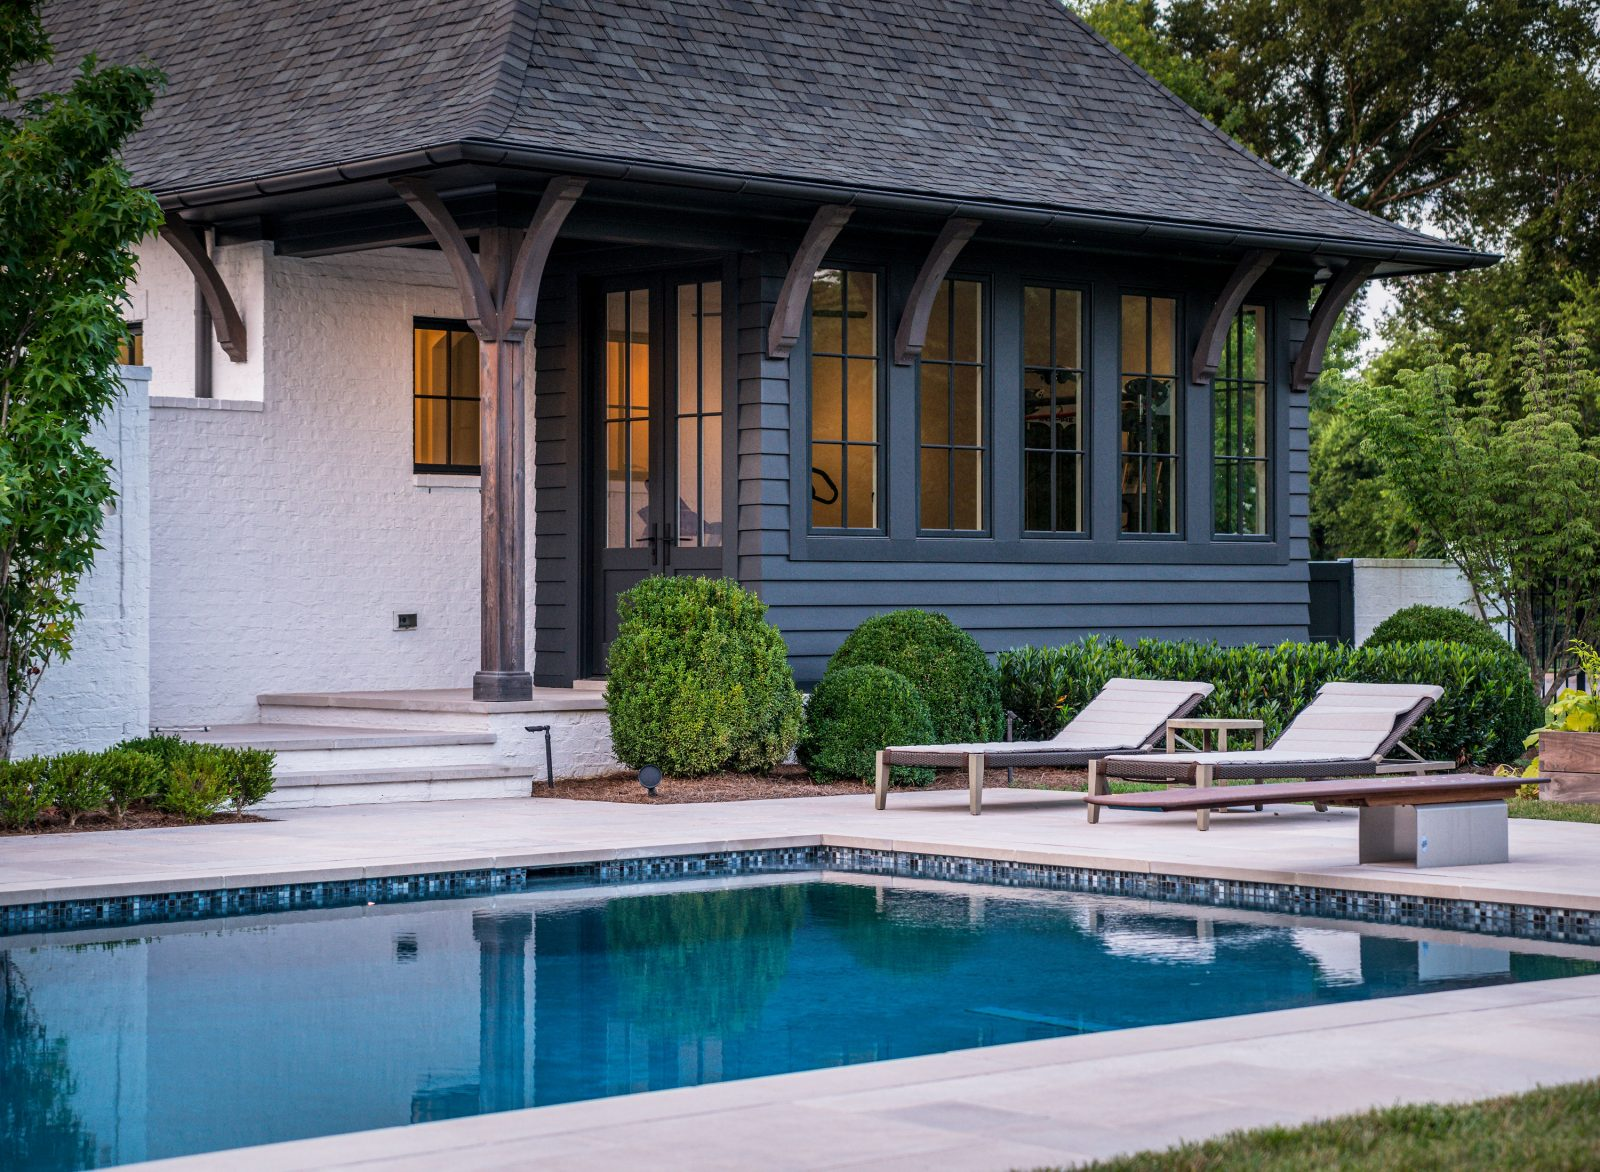 Pool house and mudroom with an outdoor lounging space at this backyard envy worthy space